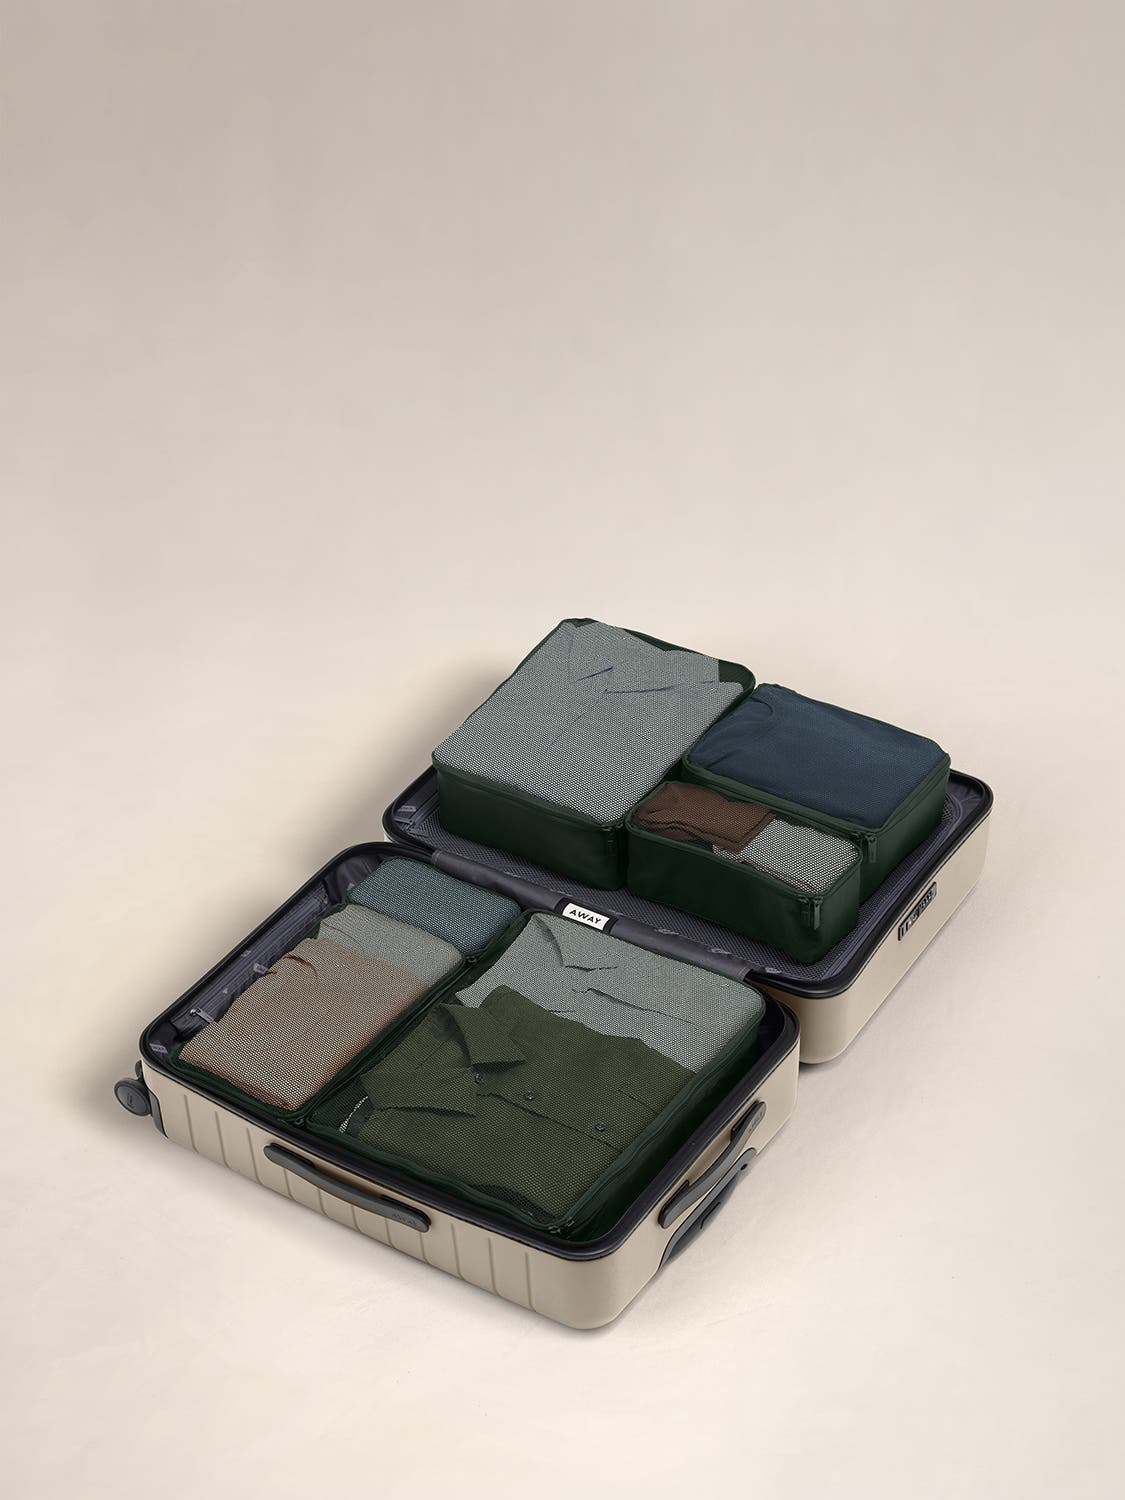 Green travel packing cubes displayed in an Away suitcase